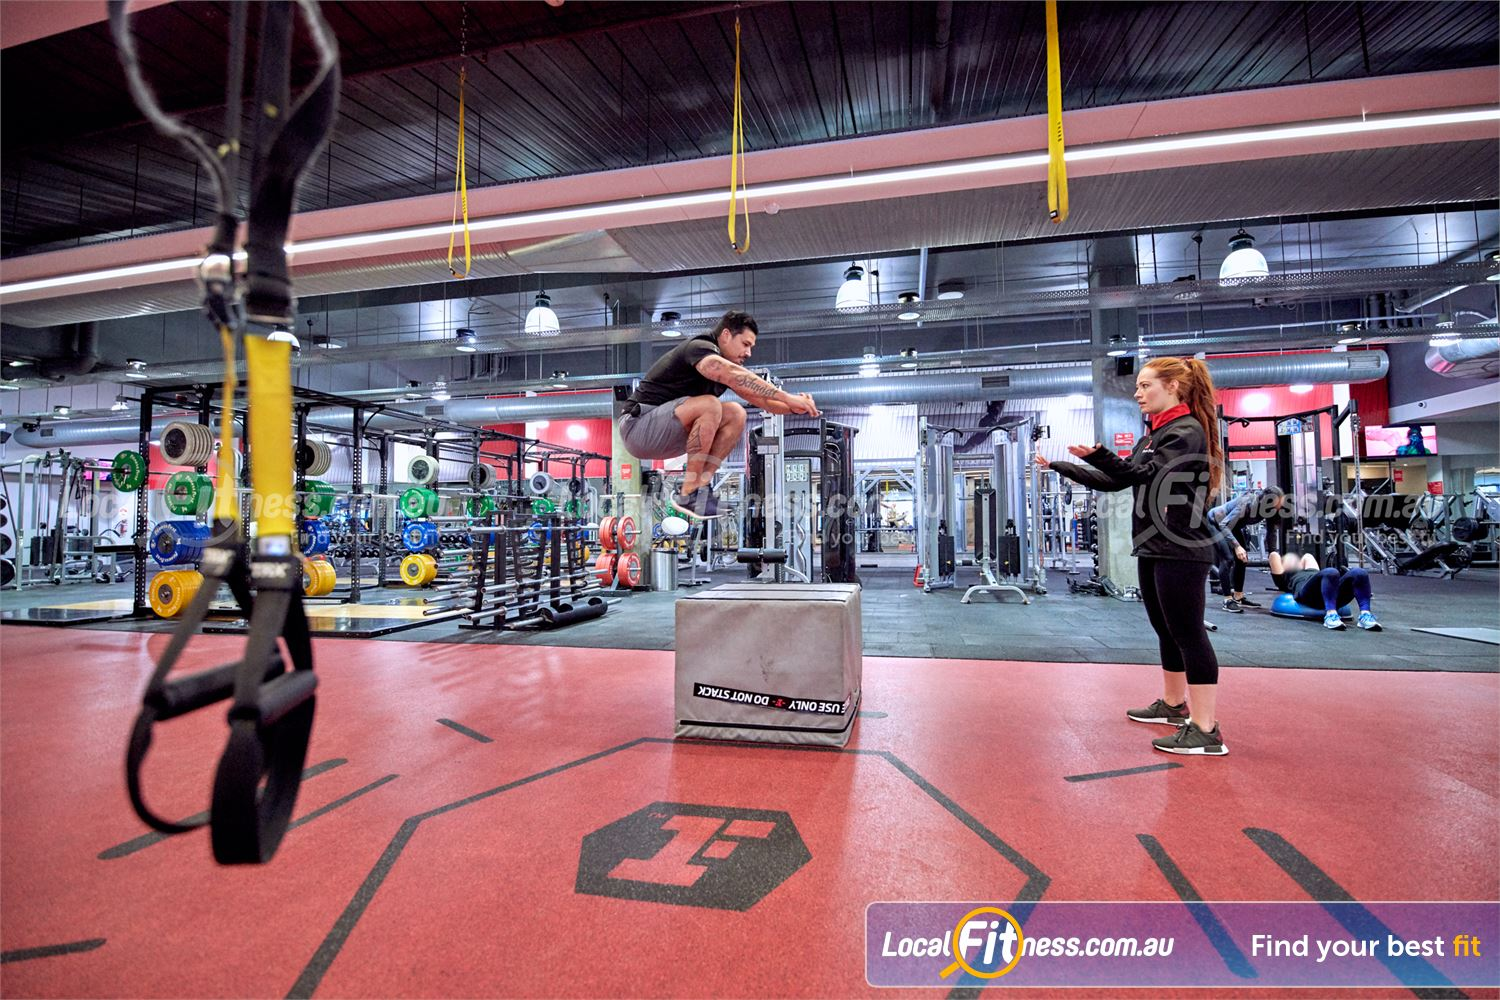 Fitness First Victoria Gardens Richmond Improve athletic performance with plyometric box jumps.